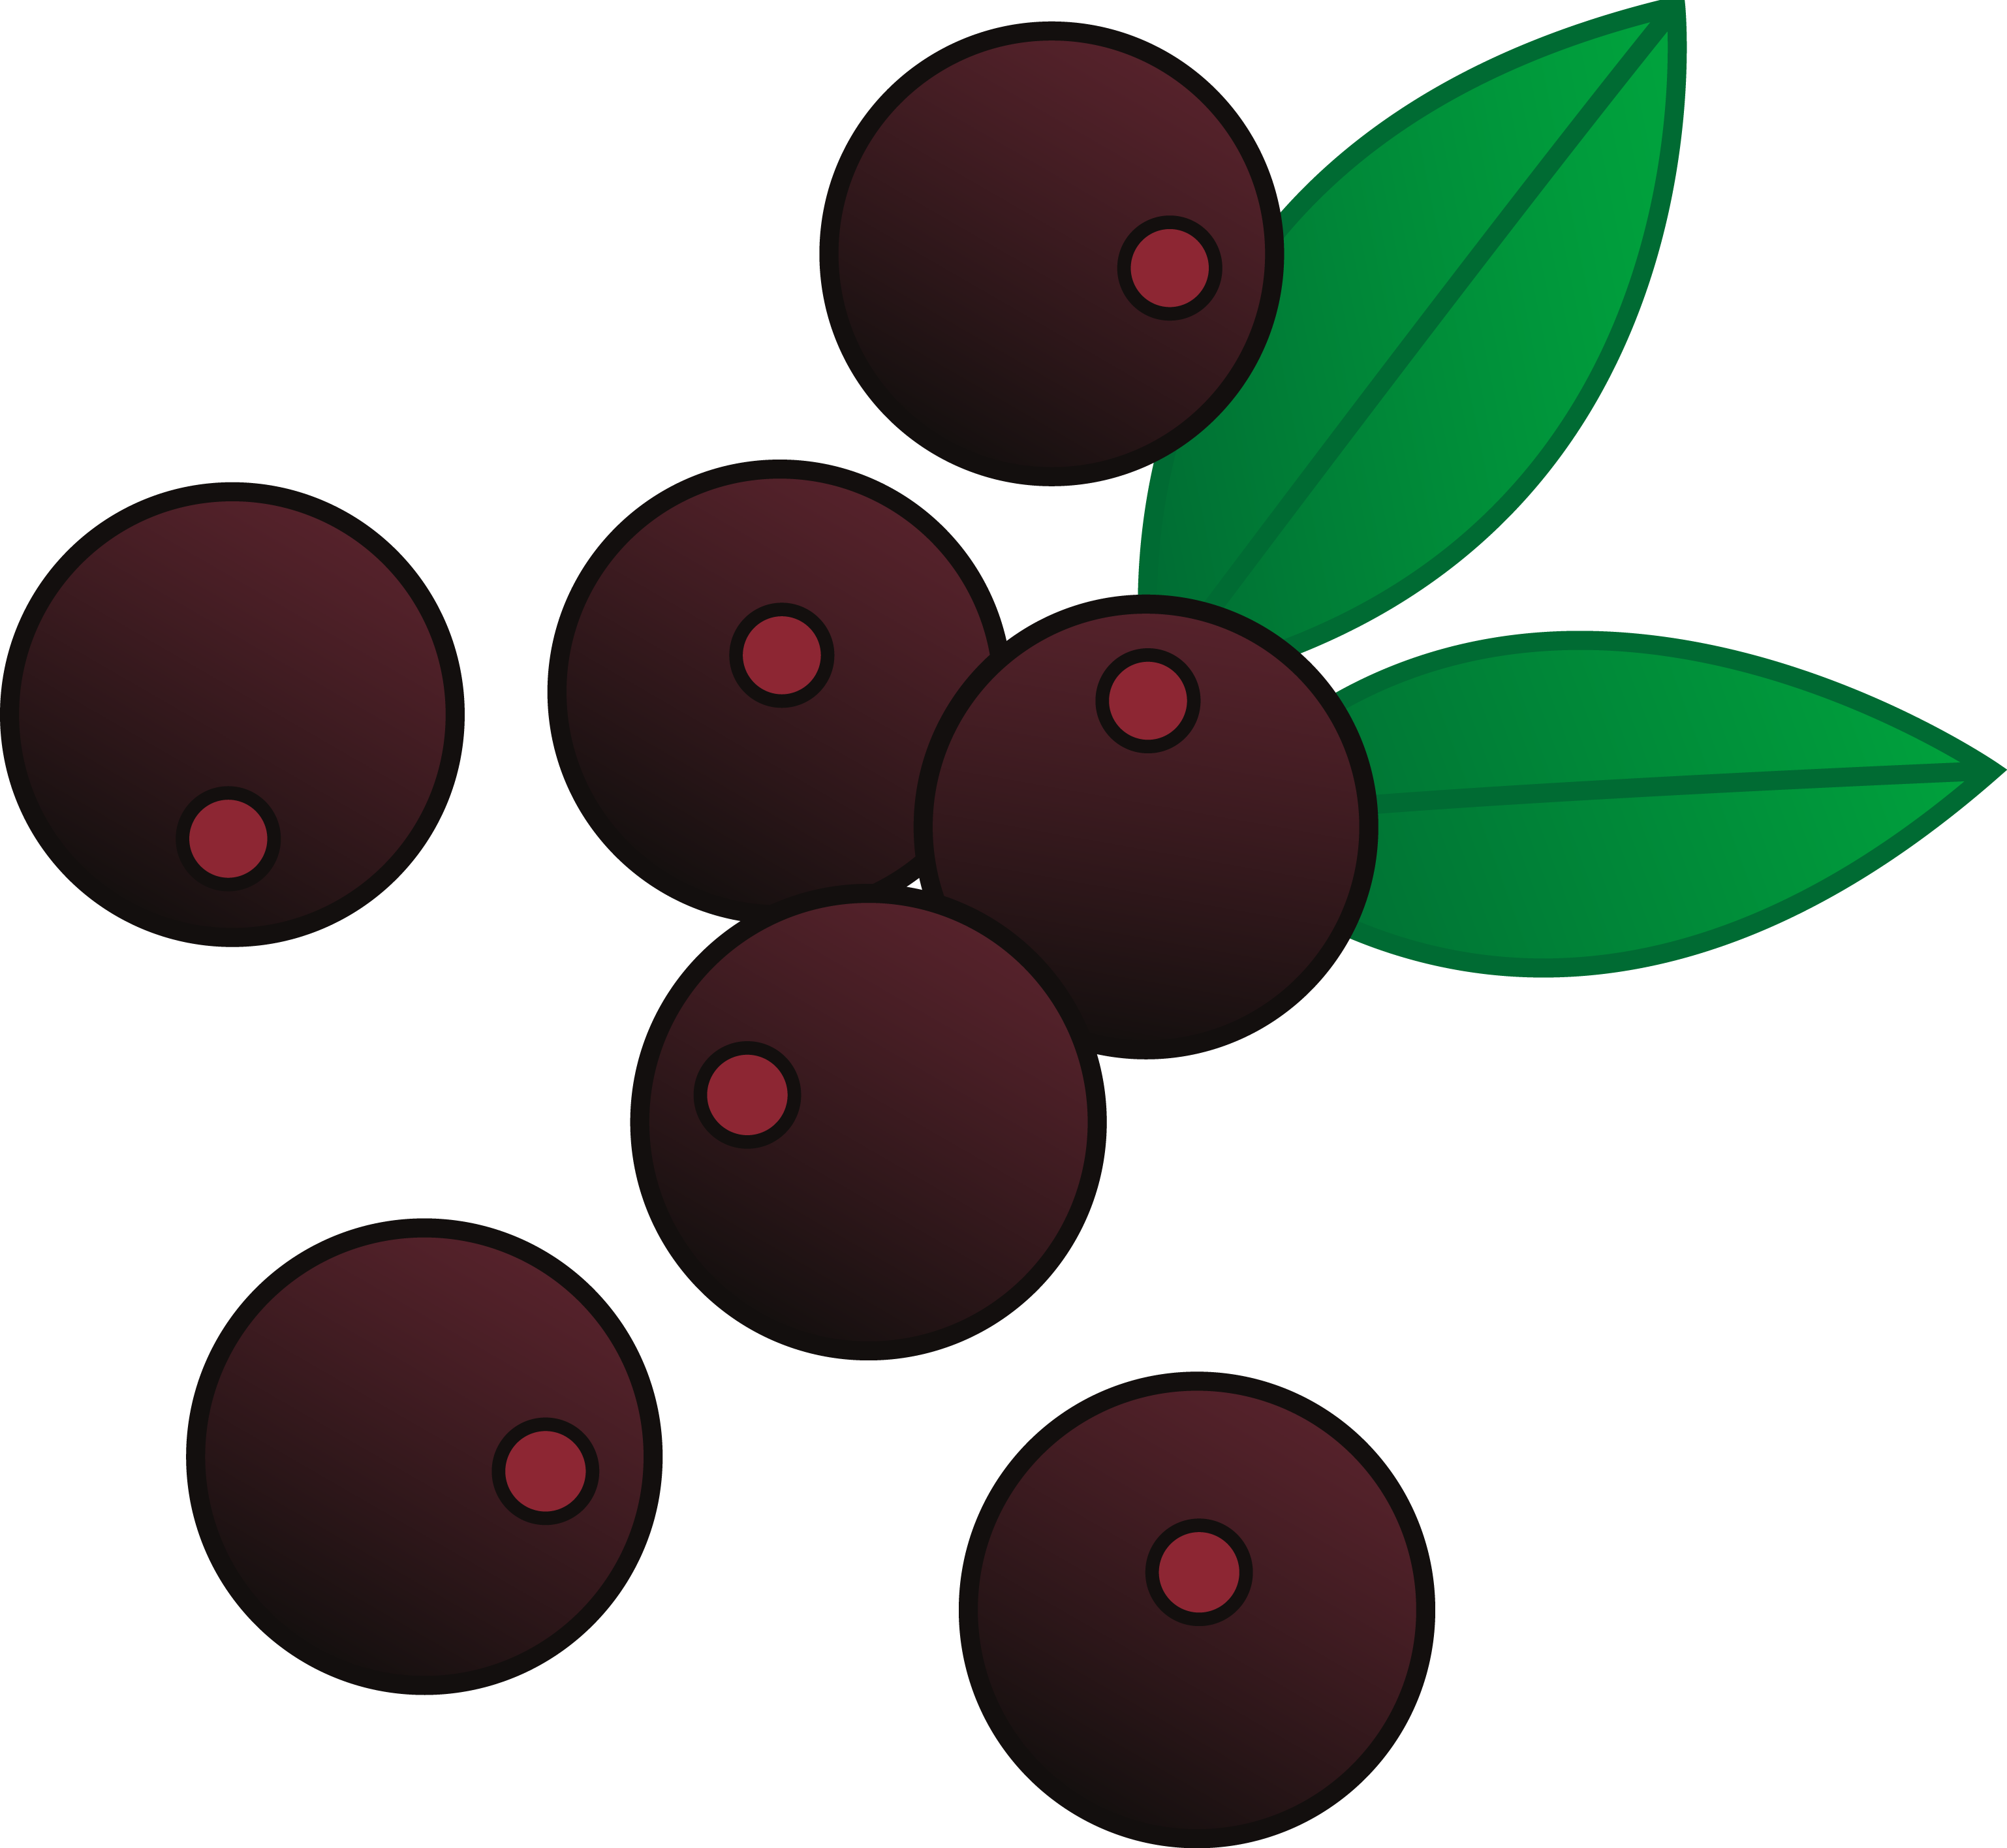 8 Acai Free Vector Images